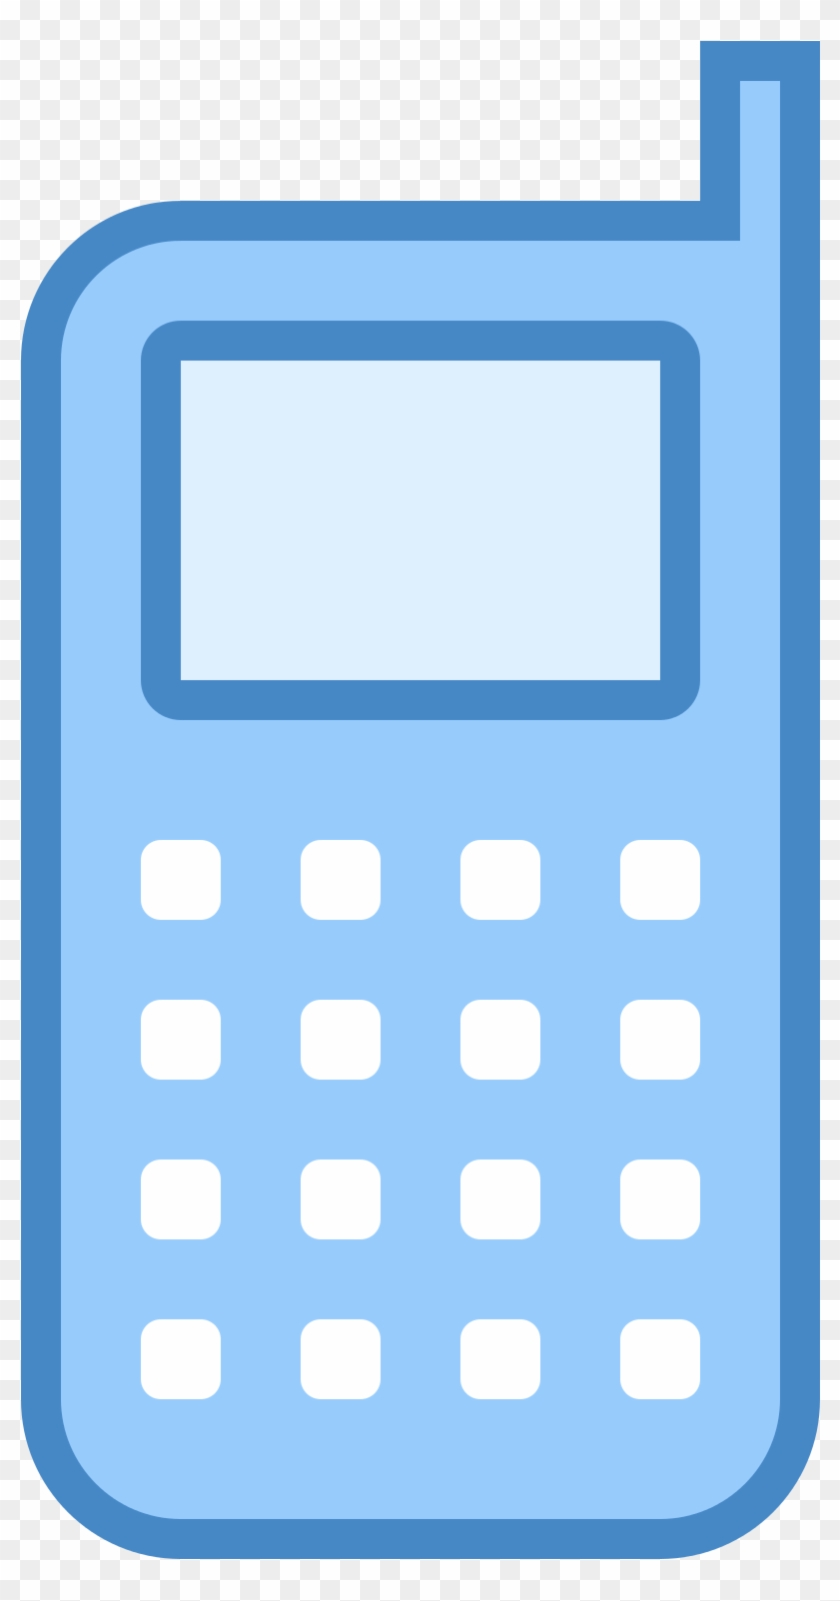 Telephone Icon Png : telephone, Telephone, Download,, Transparent, 801x1521(#58122), PngFind